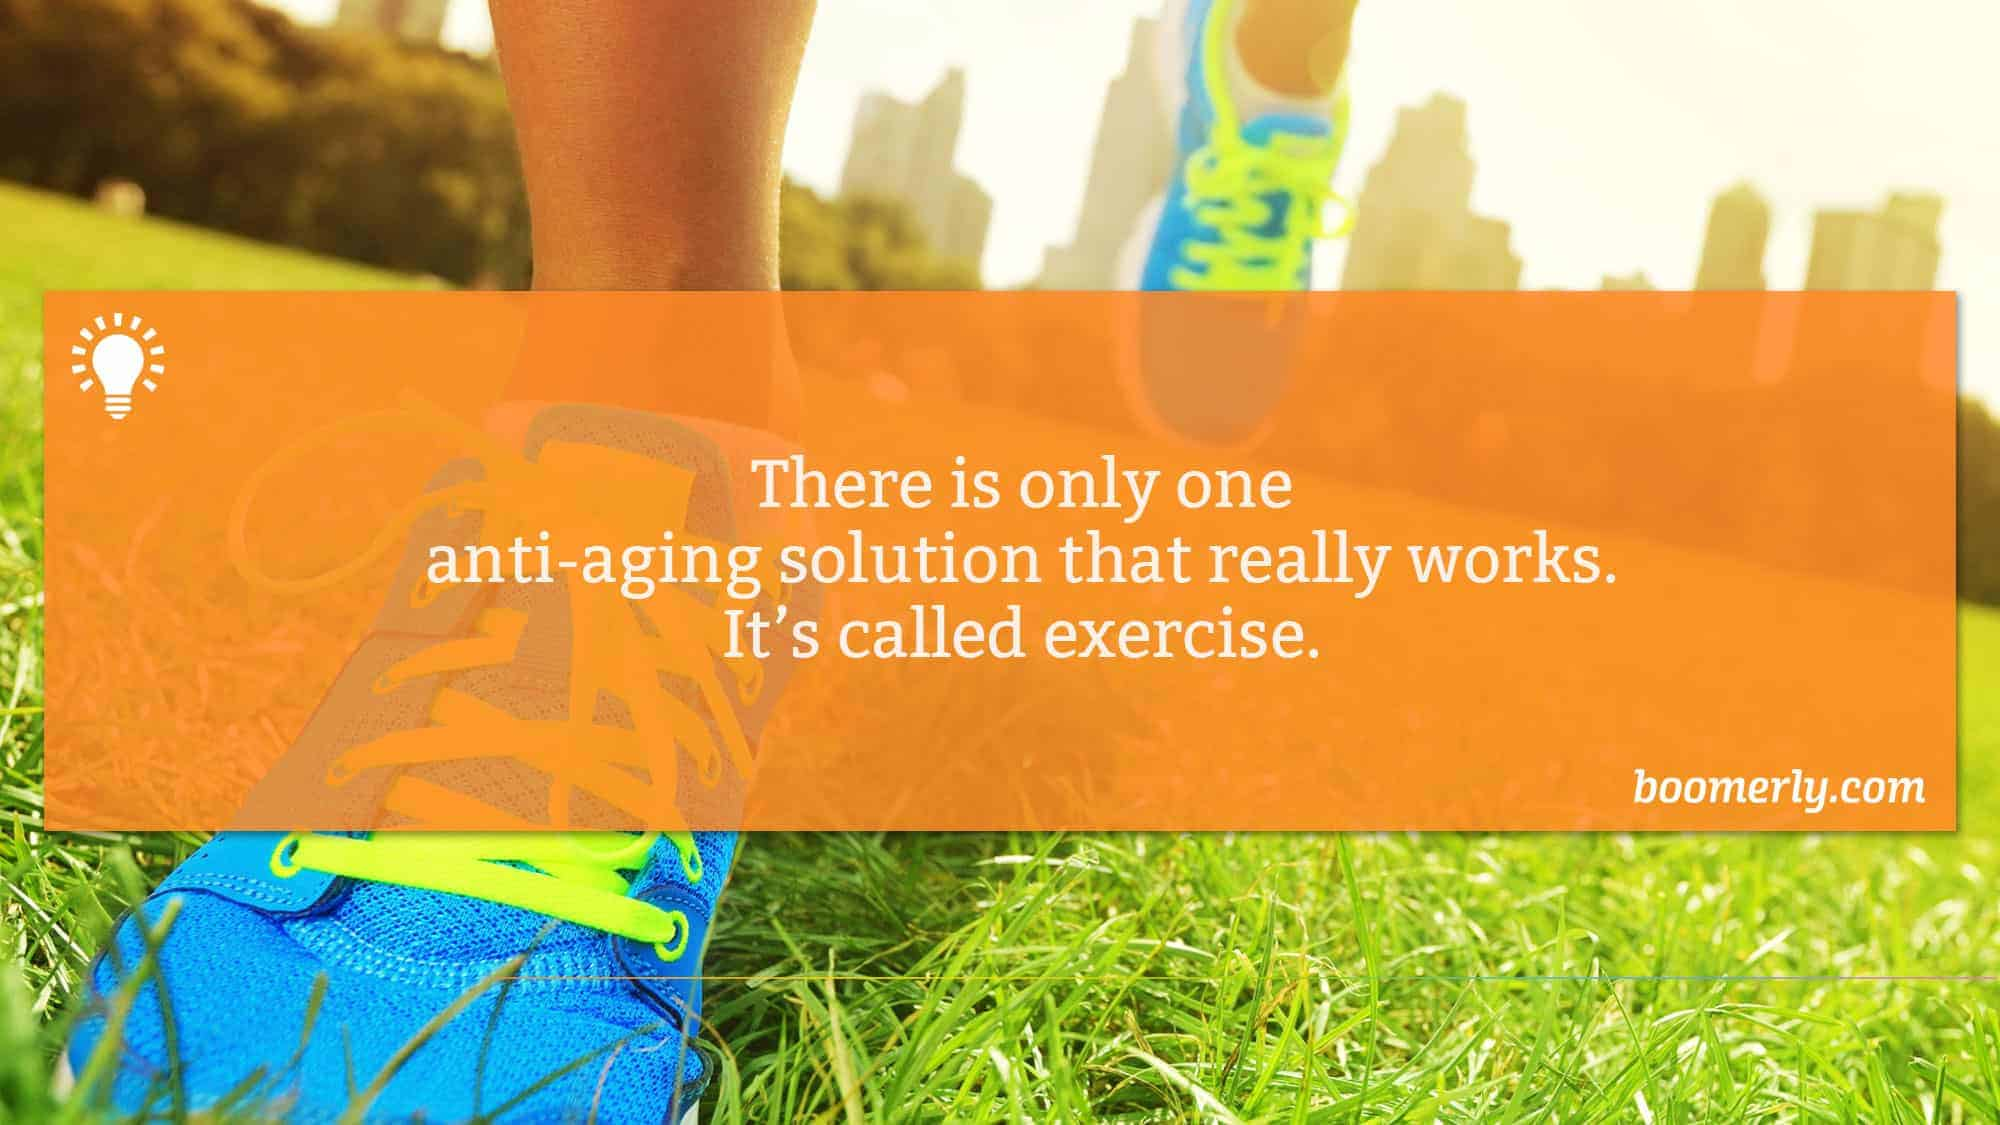 There is only one anti-aging solution that really works. It's called exercise.